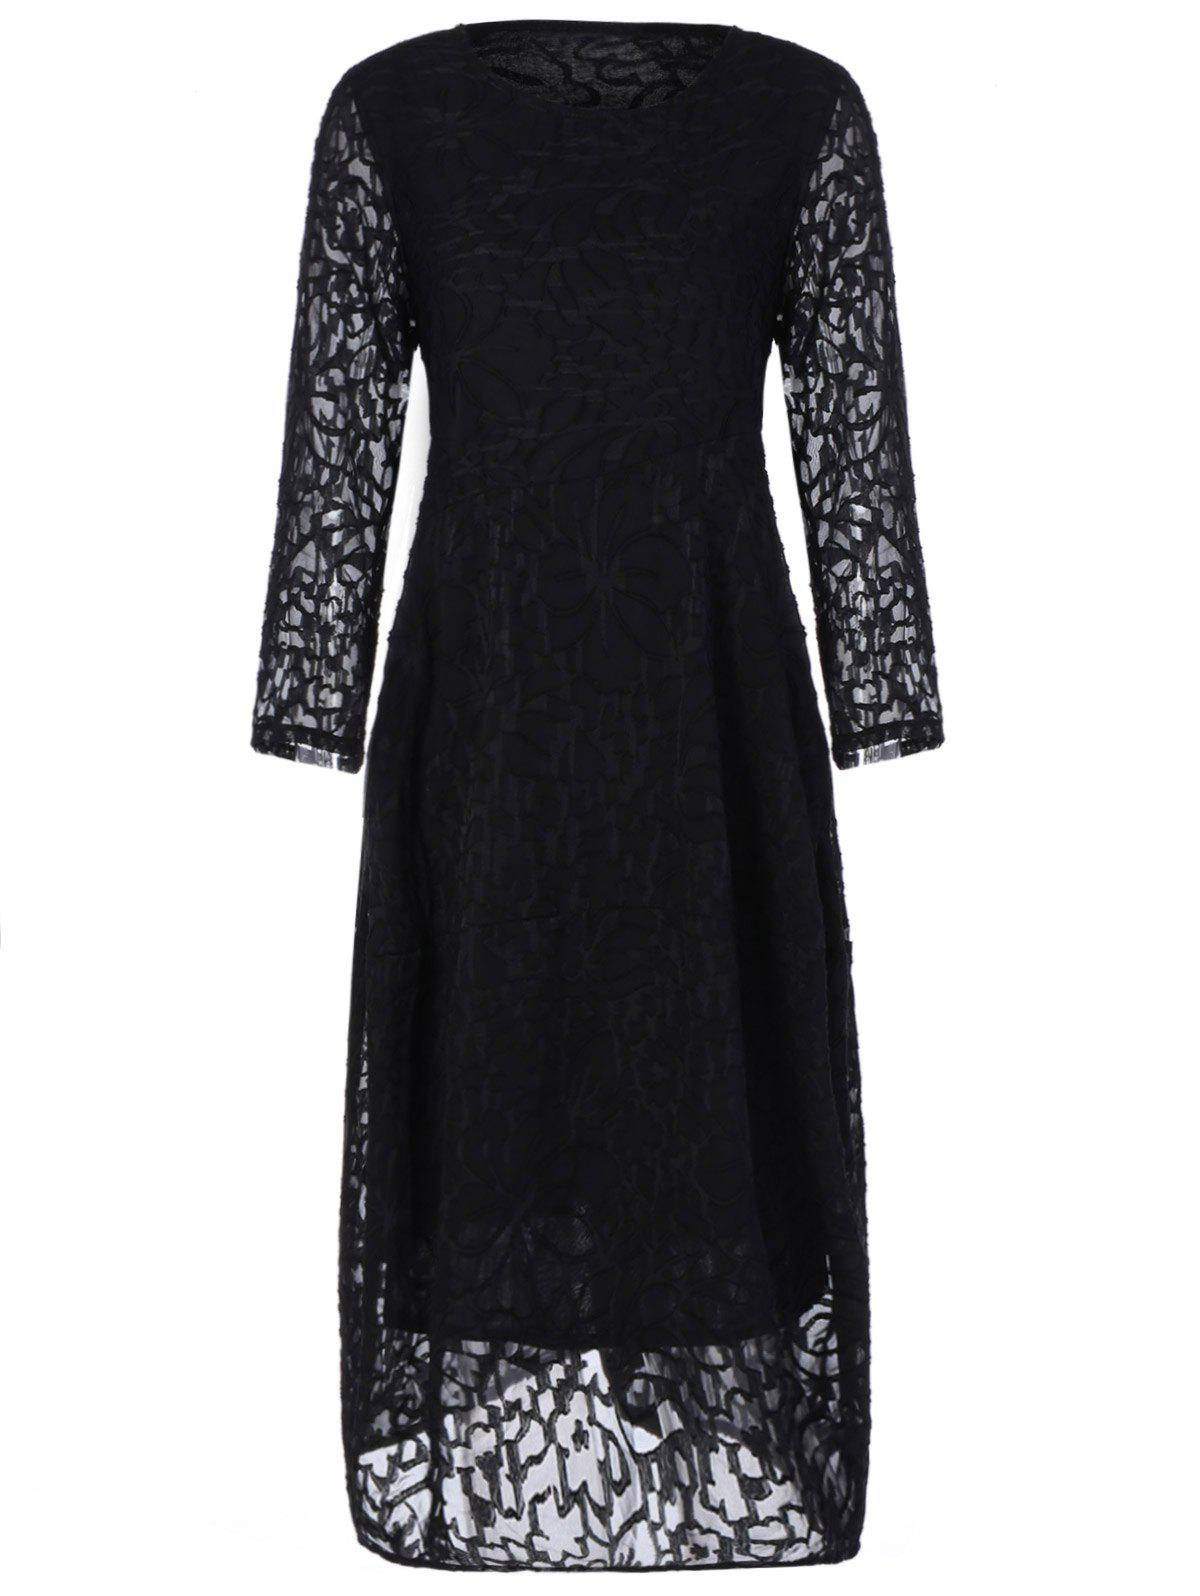 Plus Size Midi Lace Formal Party Dress midi plus size lace dress